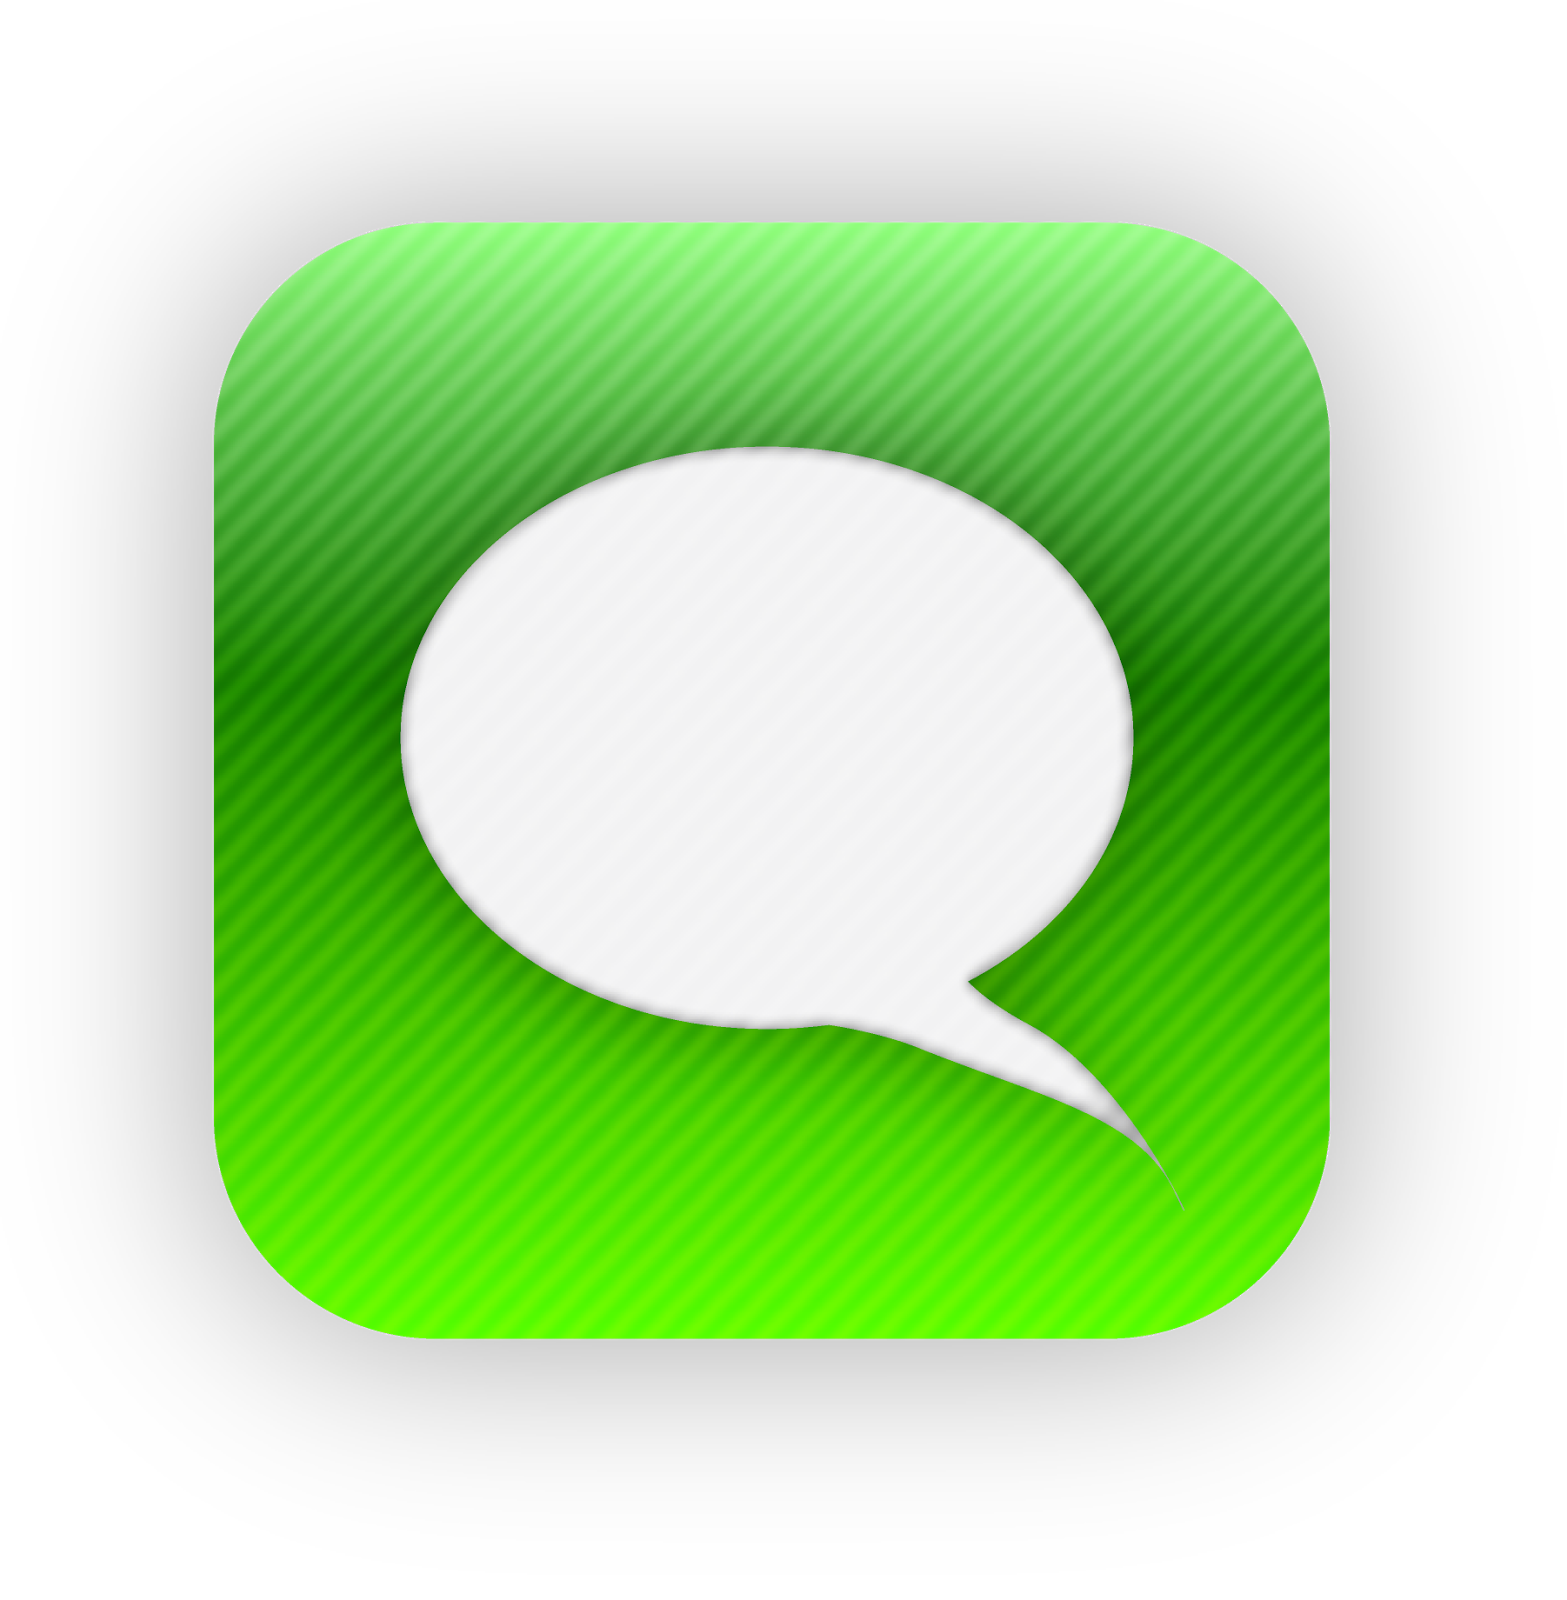 20 IPhone Messages App Icon Images - iPhone App Icons ... Text Icon Png